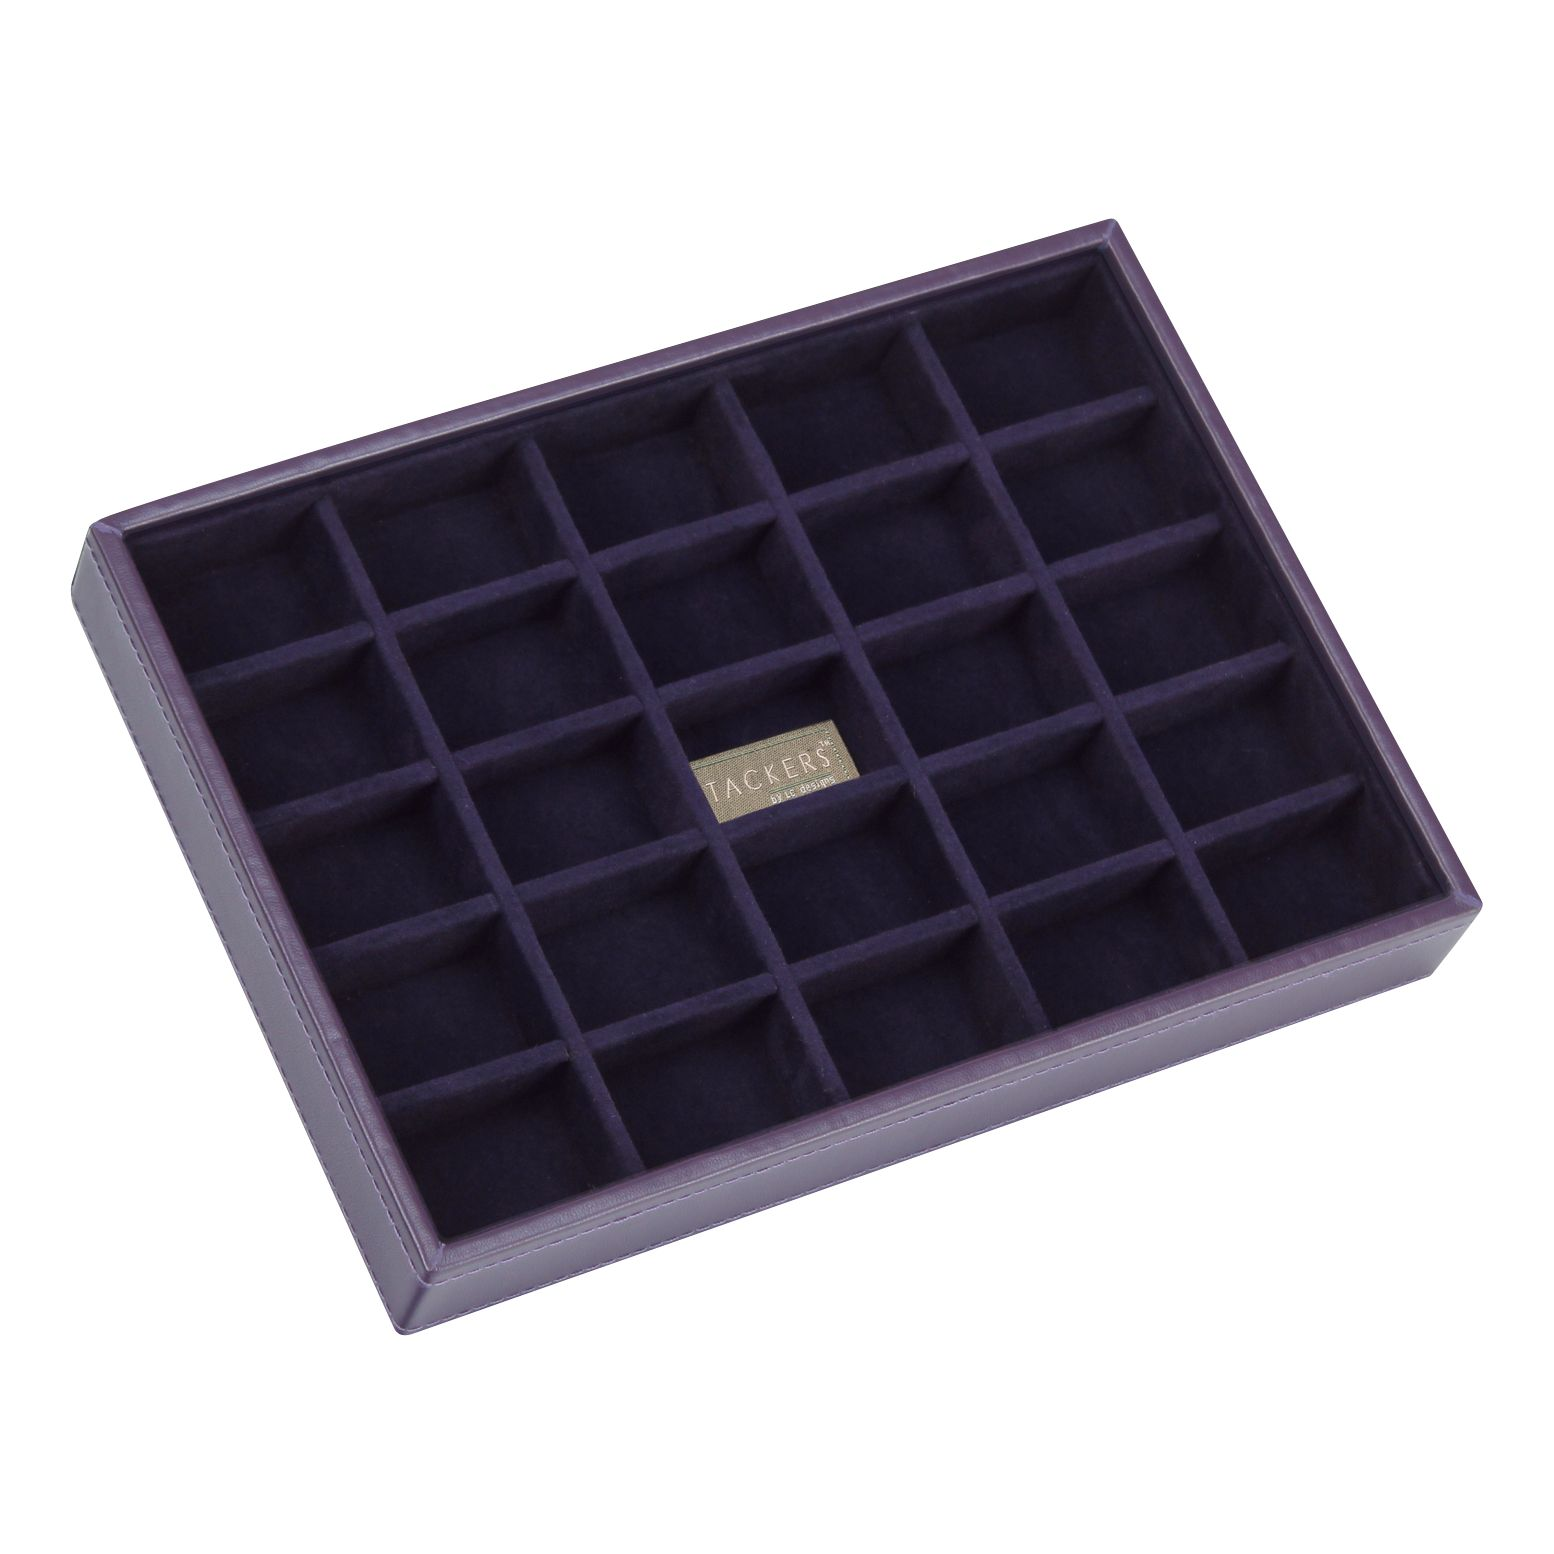 Stackers Stackers Jewellery 25-sections Tray, Purple